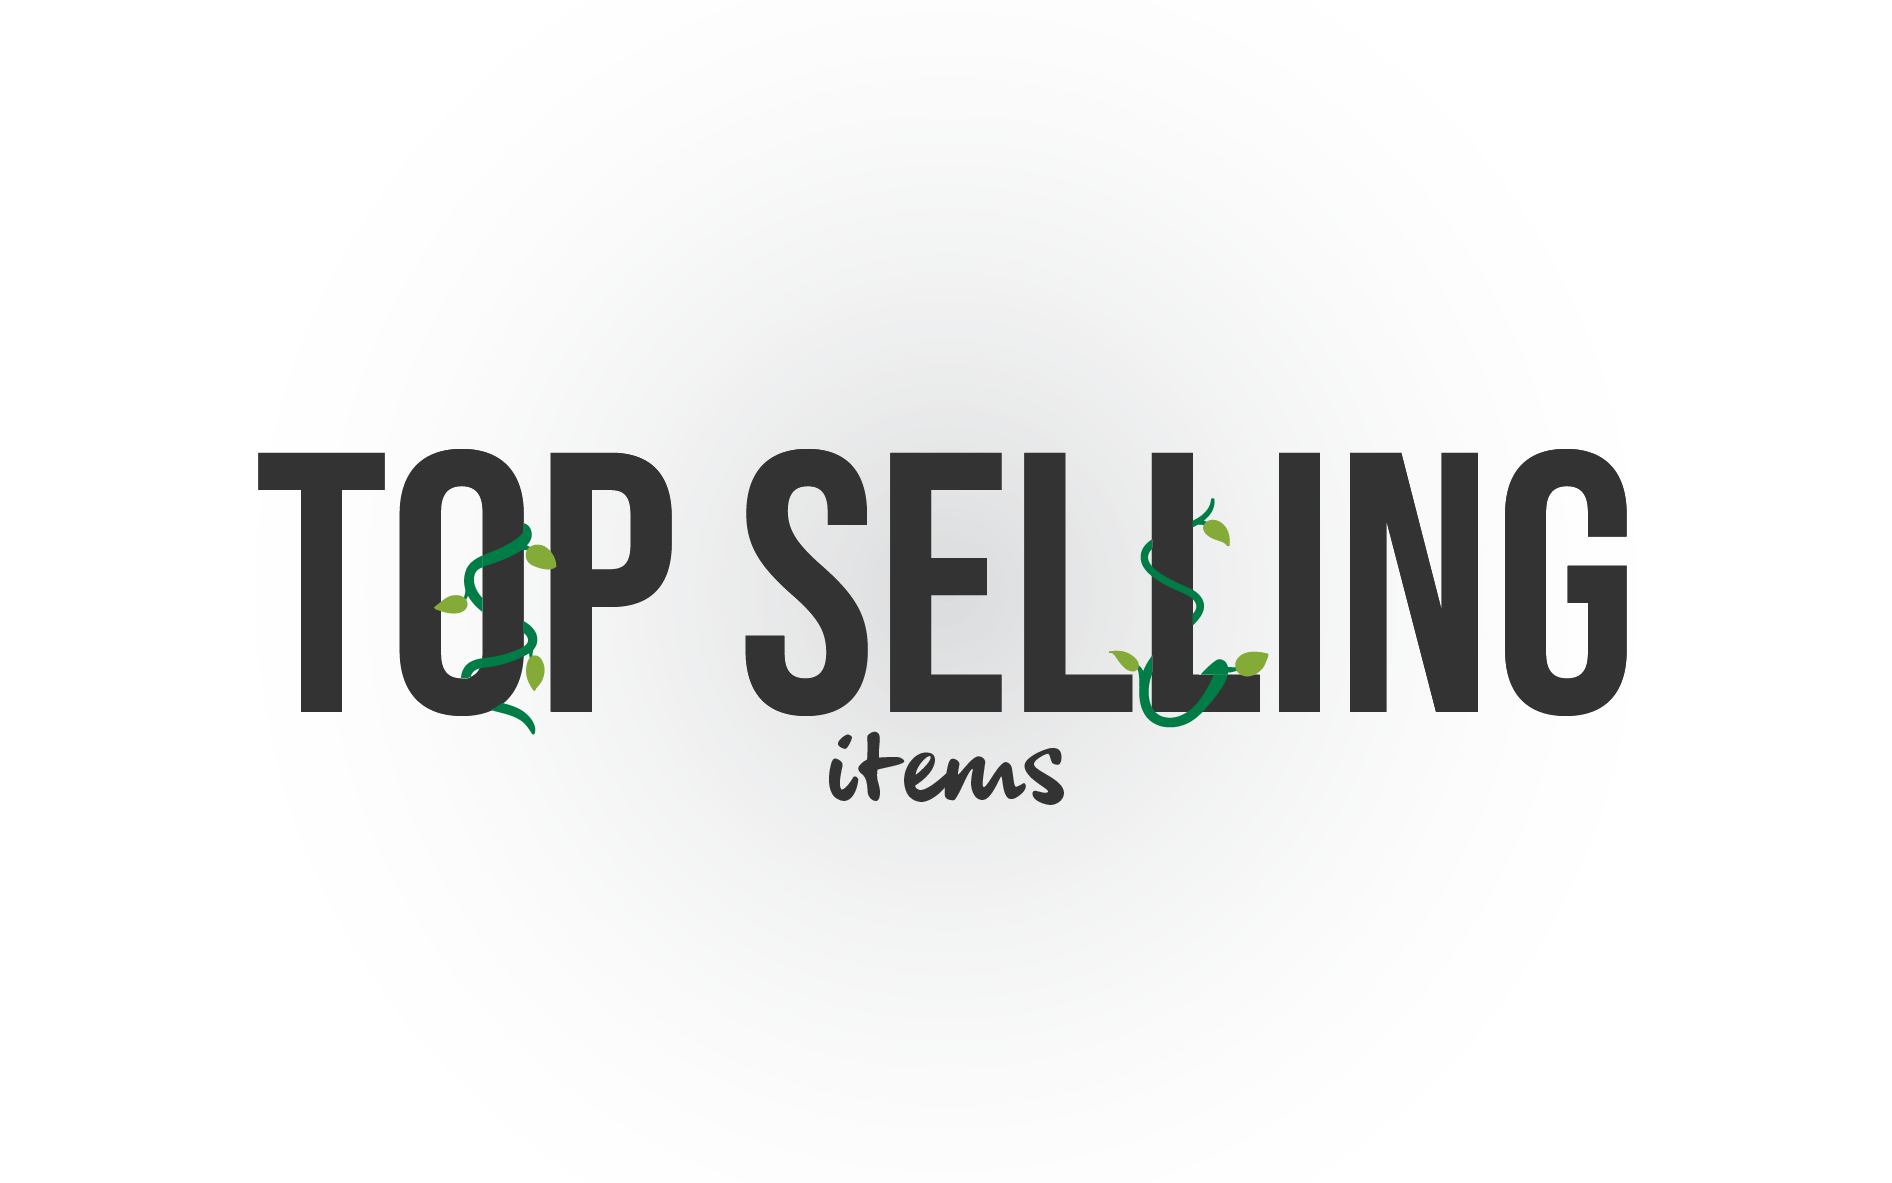 Best selling items!